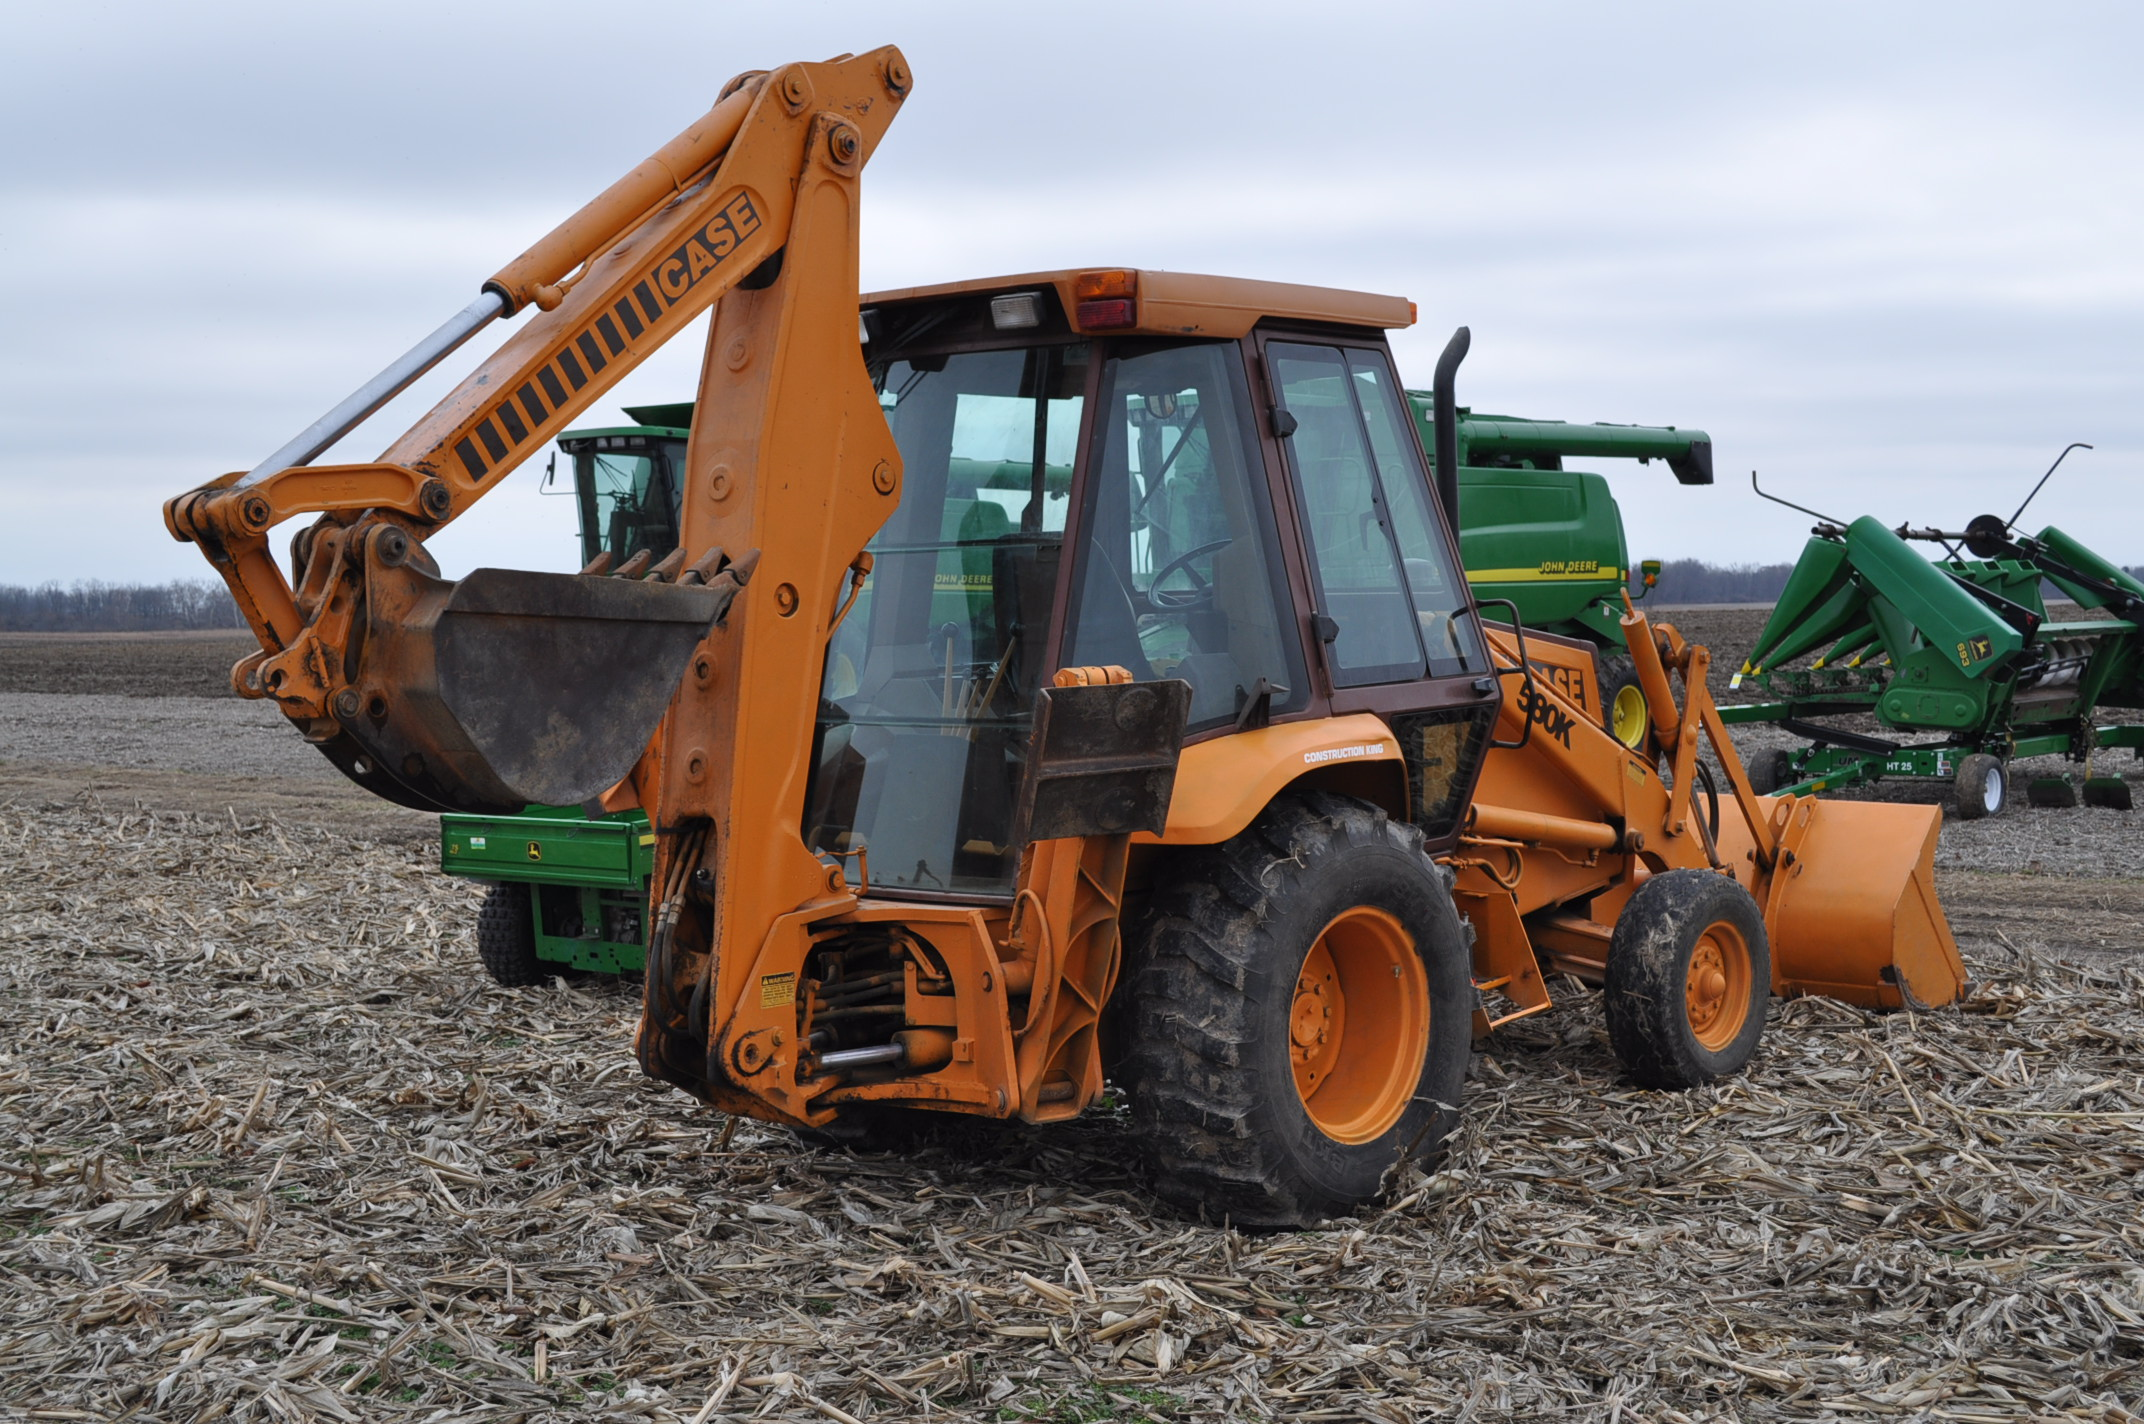 "Case Construction King 580 K backhoe, 17.5L-24 rear, 11L-16 front, CHA, 24"" digging bucket, 2 - Image 3 of 15"